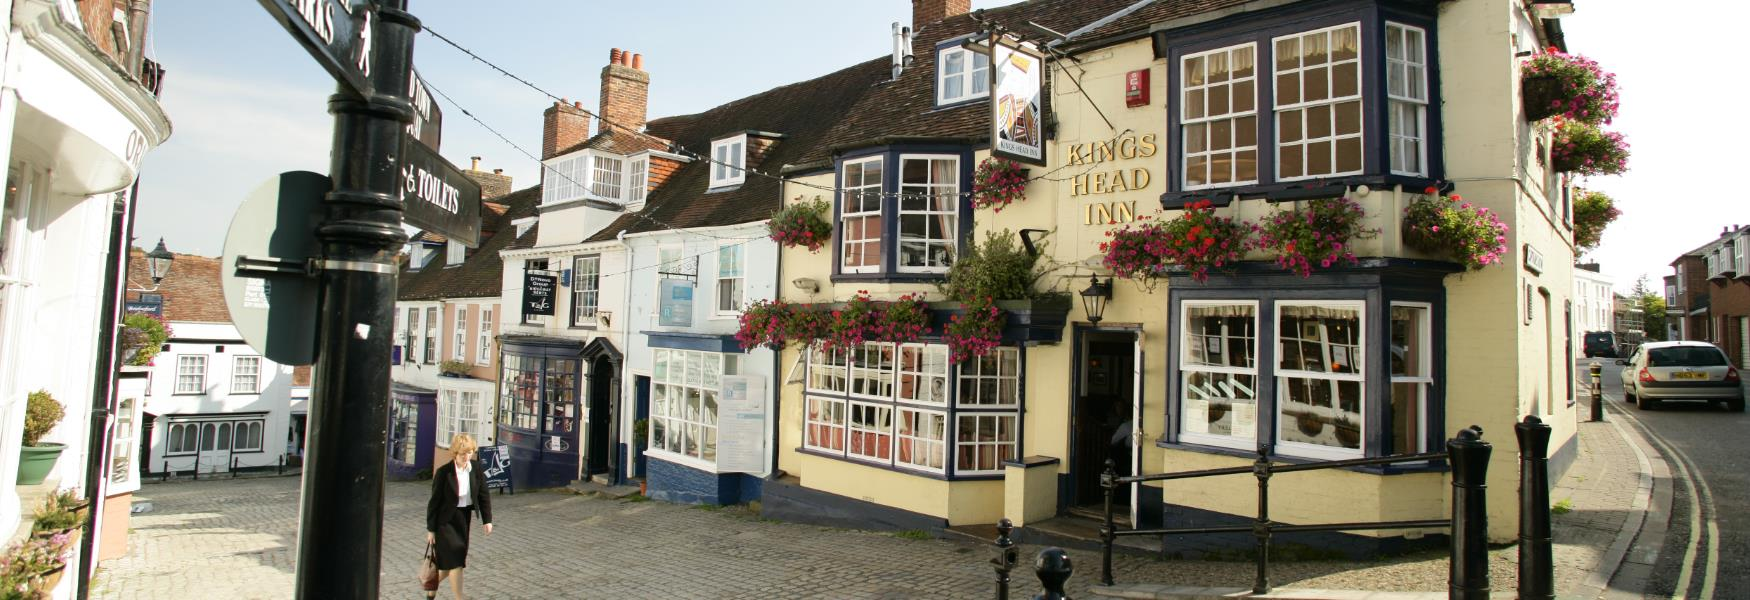 Shops and Pubs down cobbles in Lymington High Street in the New Forest